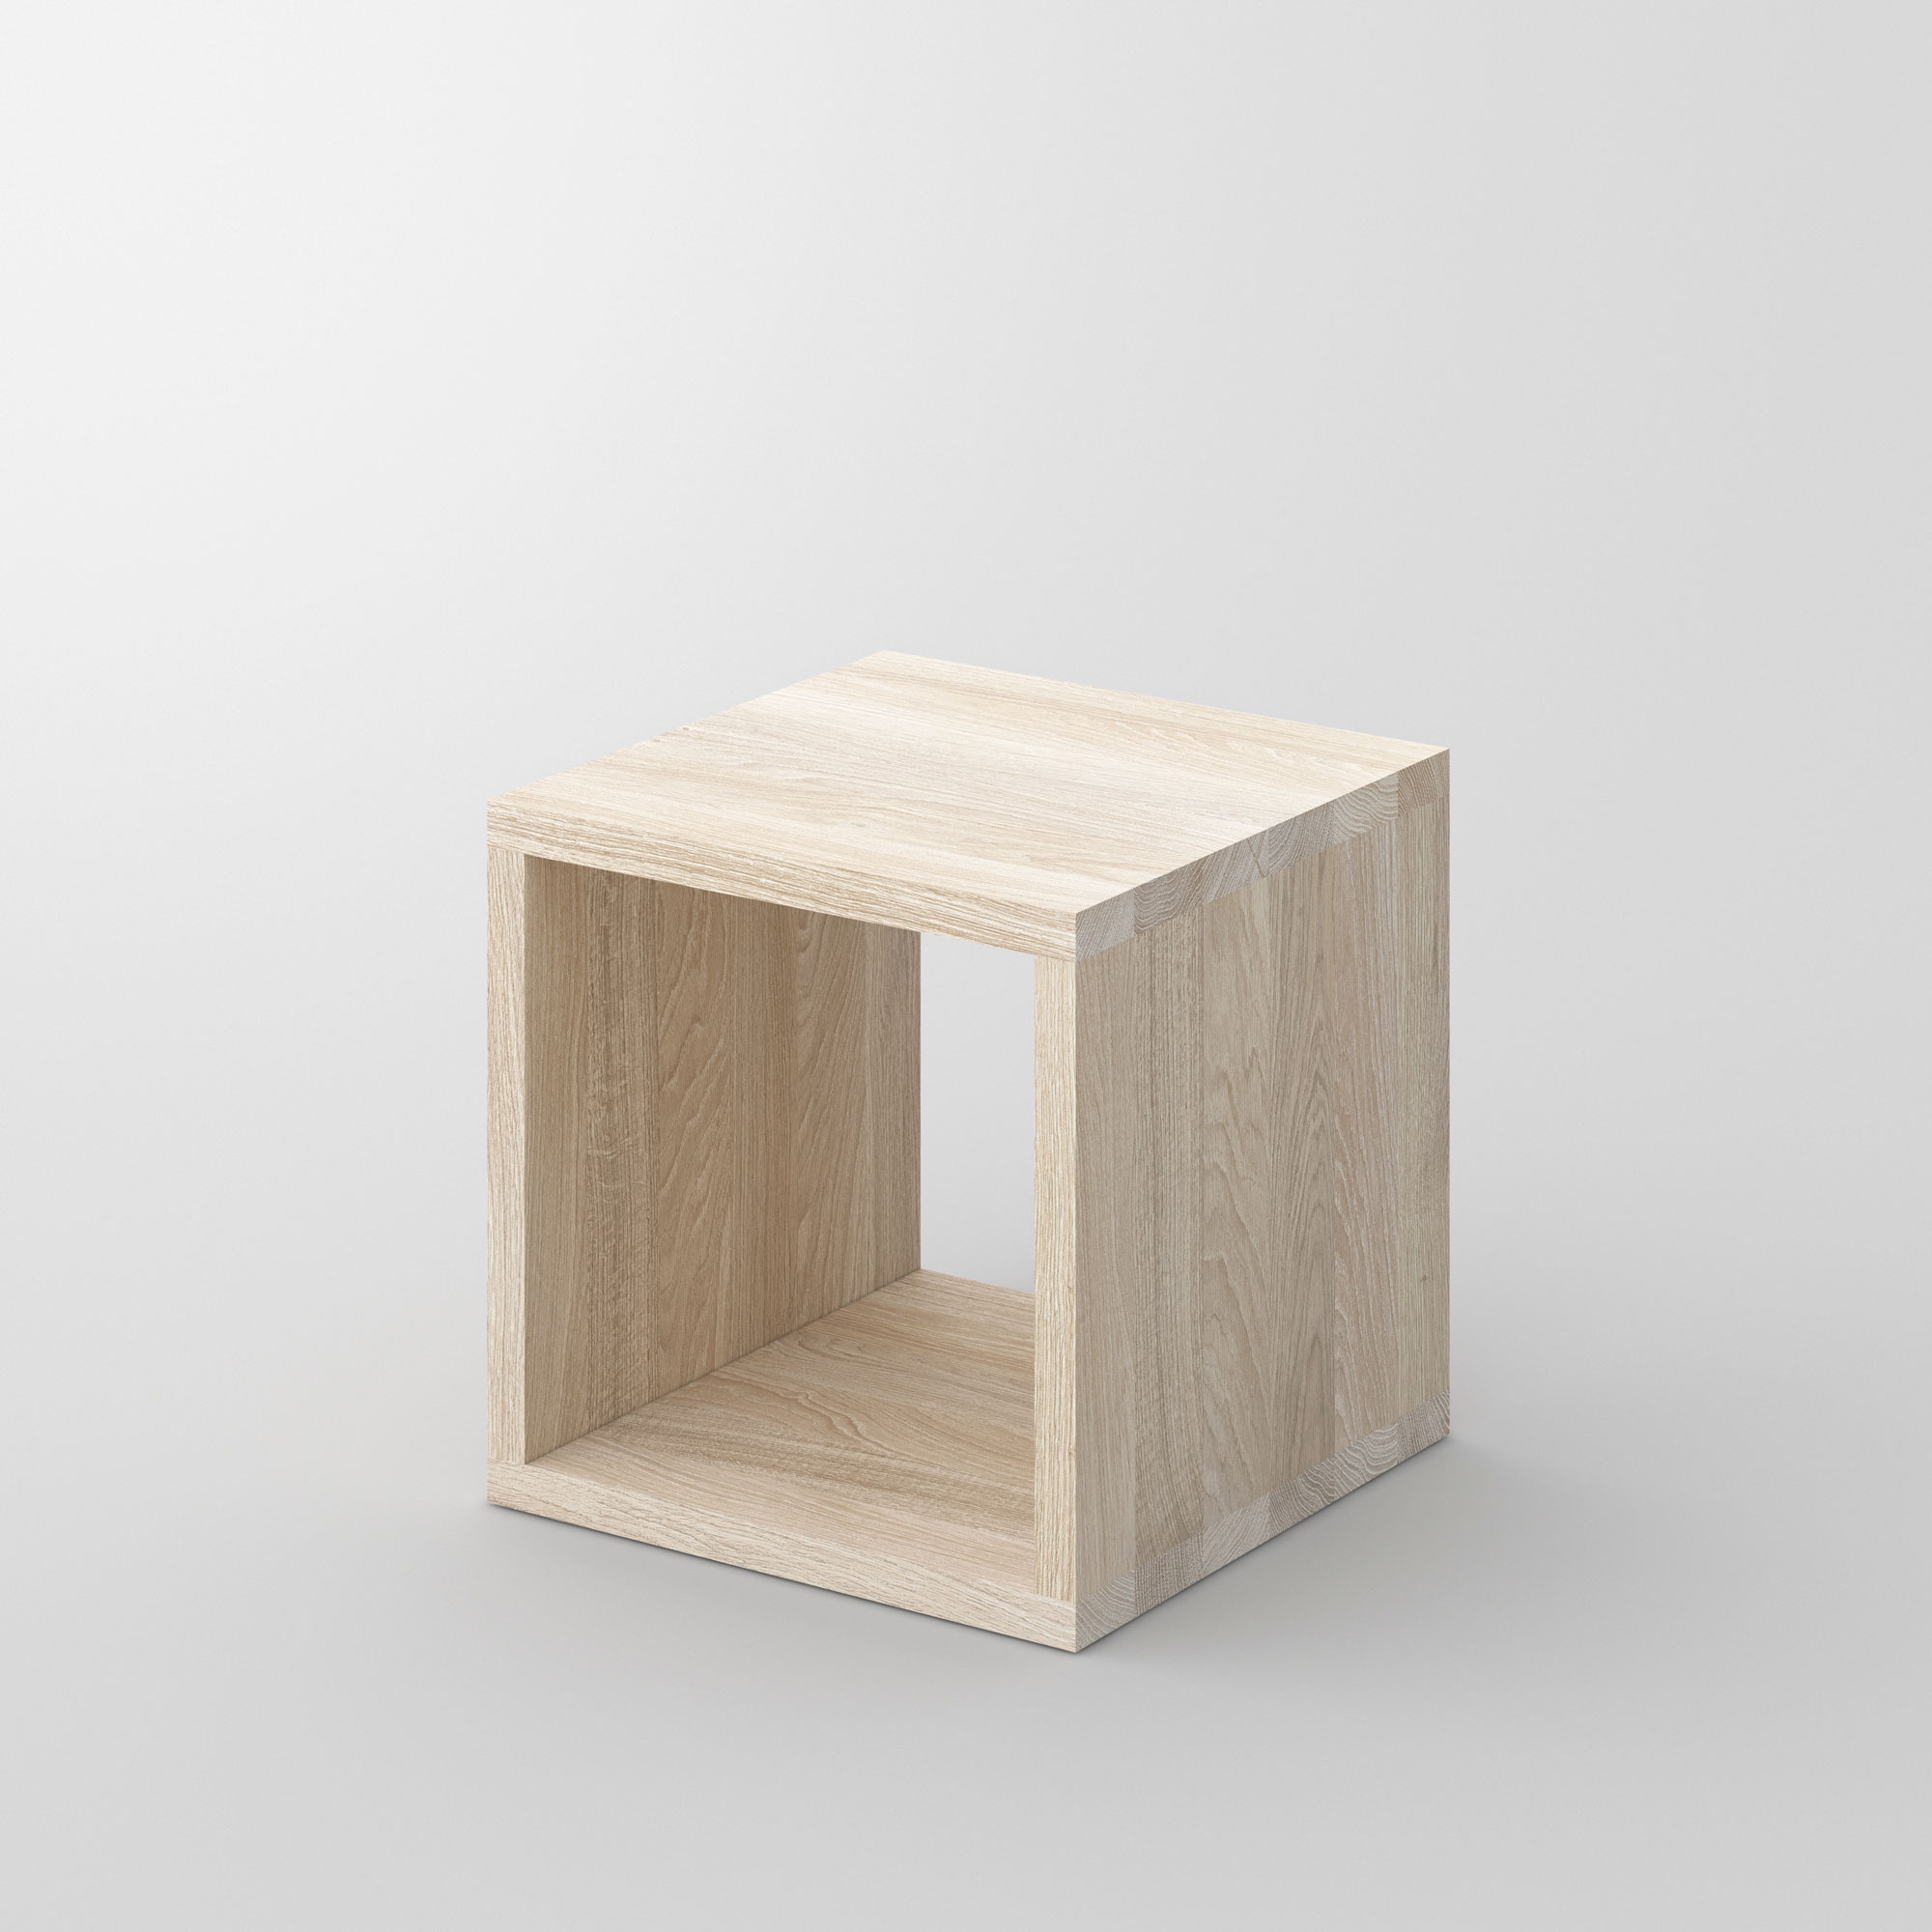 Multifunctional Wooden Coffee Table MENA B 3 cam1 custom made in solid wood by vitamin design